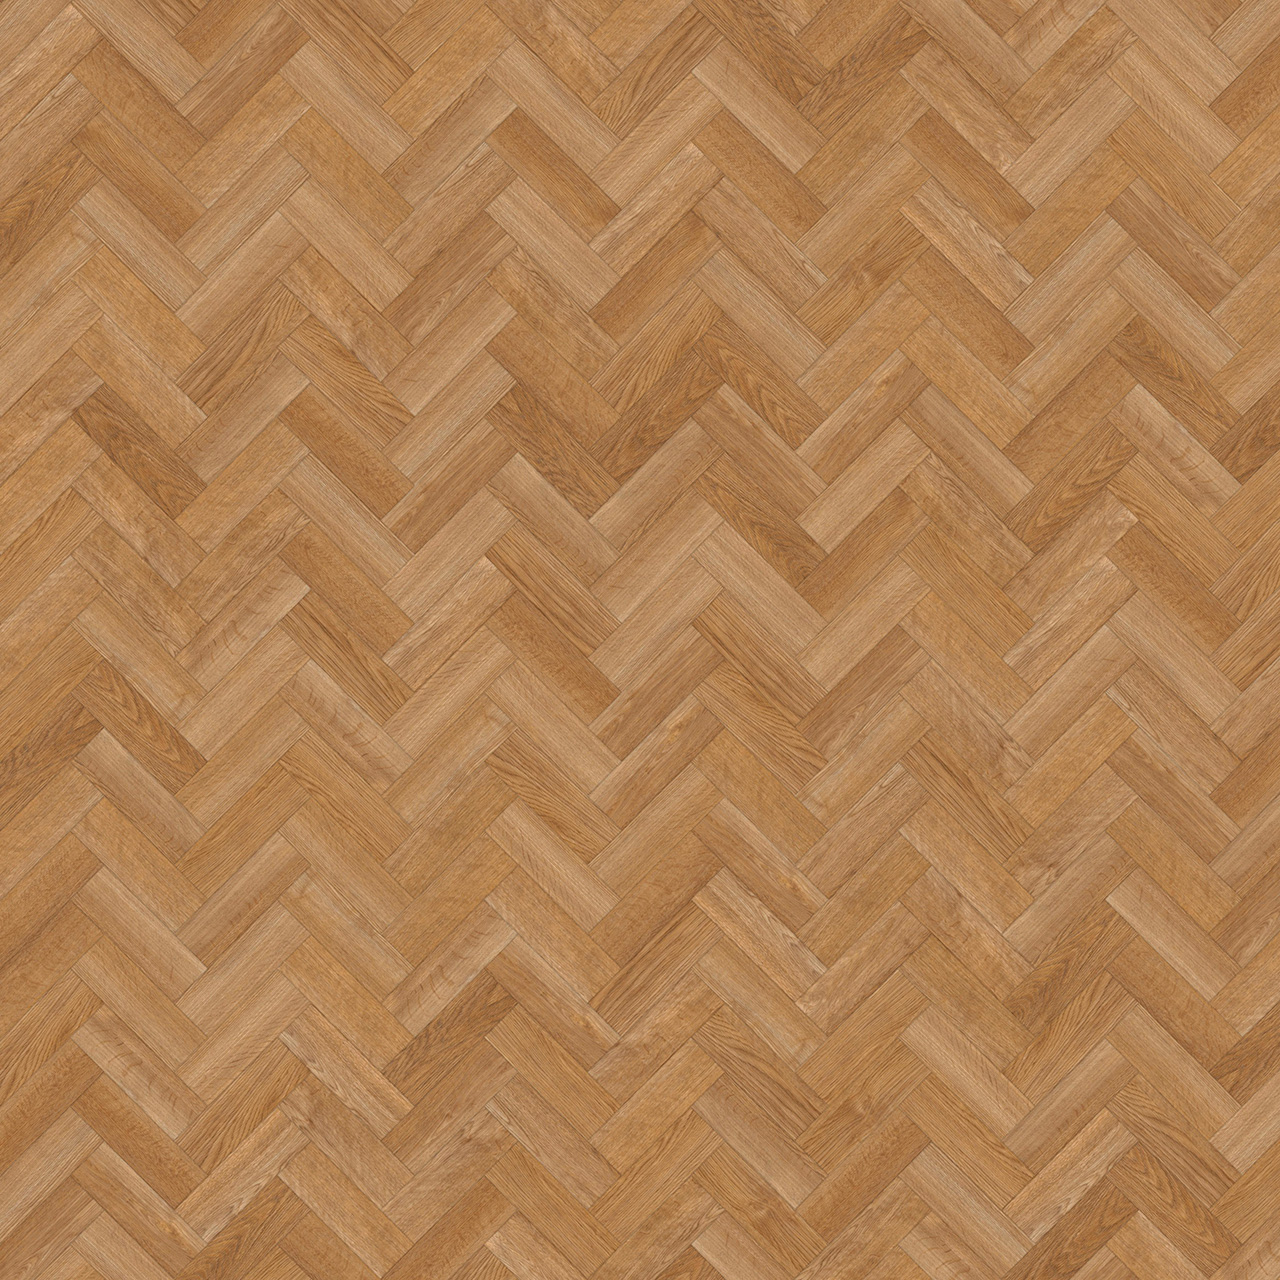 designers 39 choice parquet luxury vinyl flooring tiles design flooring by amtico. Black Bedroom Furniture Sets. Home Design Ideas